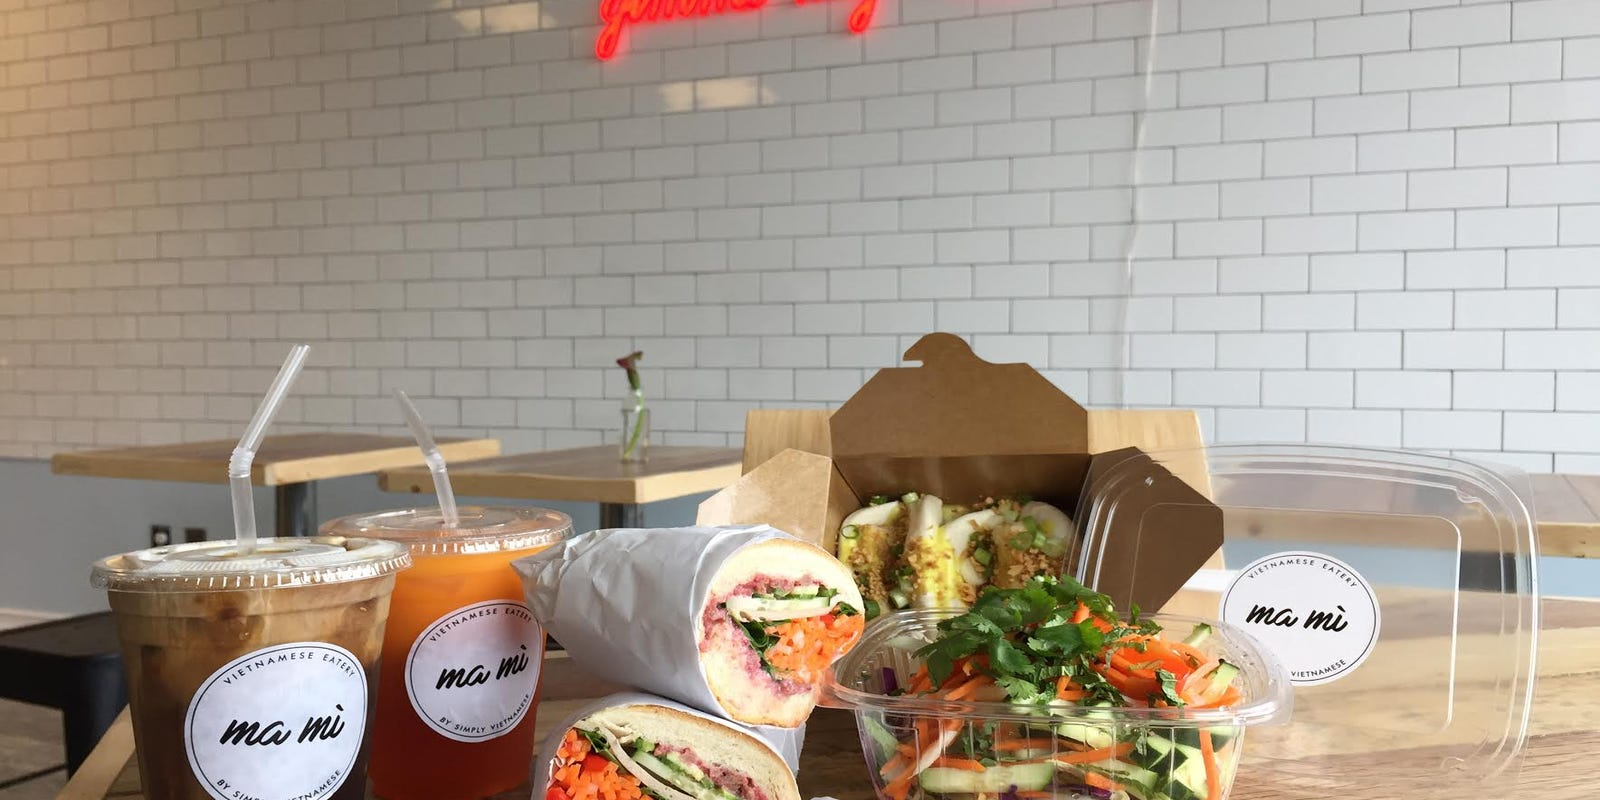 Comment Ranger Ma Cuisine ma mì eatery, a fast-casual vietnamese restaurant, now open